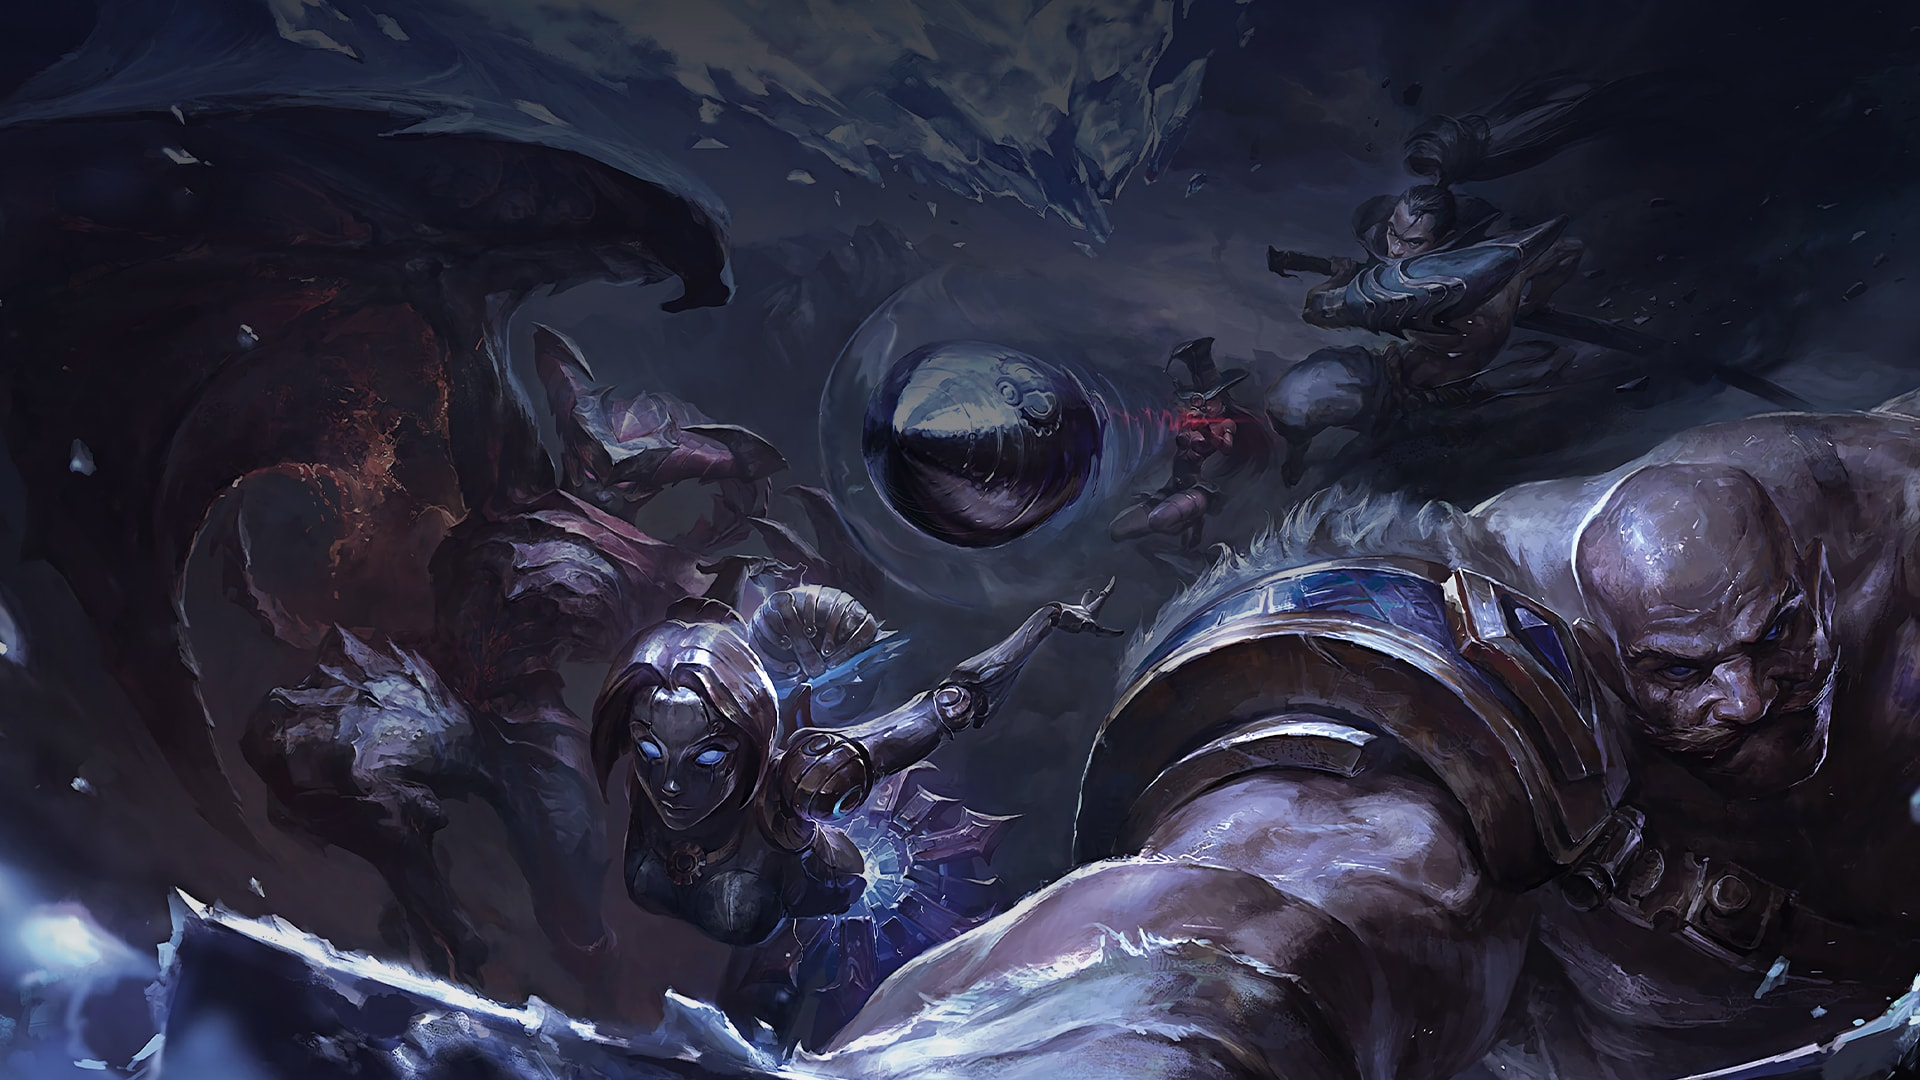 Riot won't just balance League of Legends for the top 10% anymore